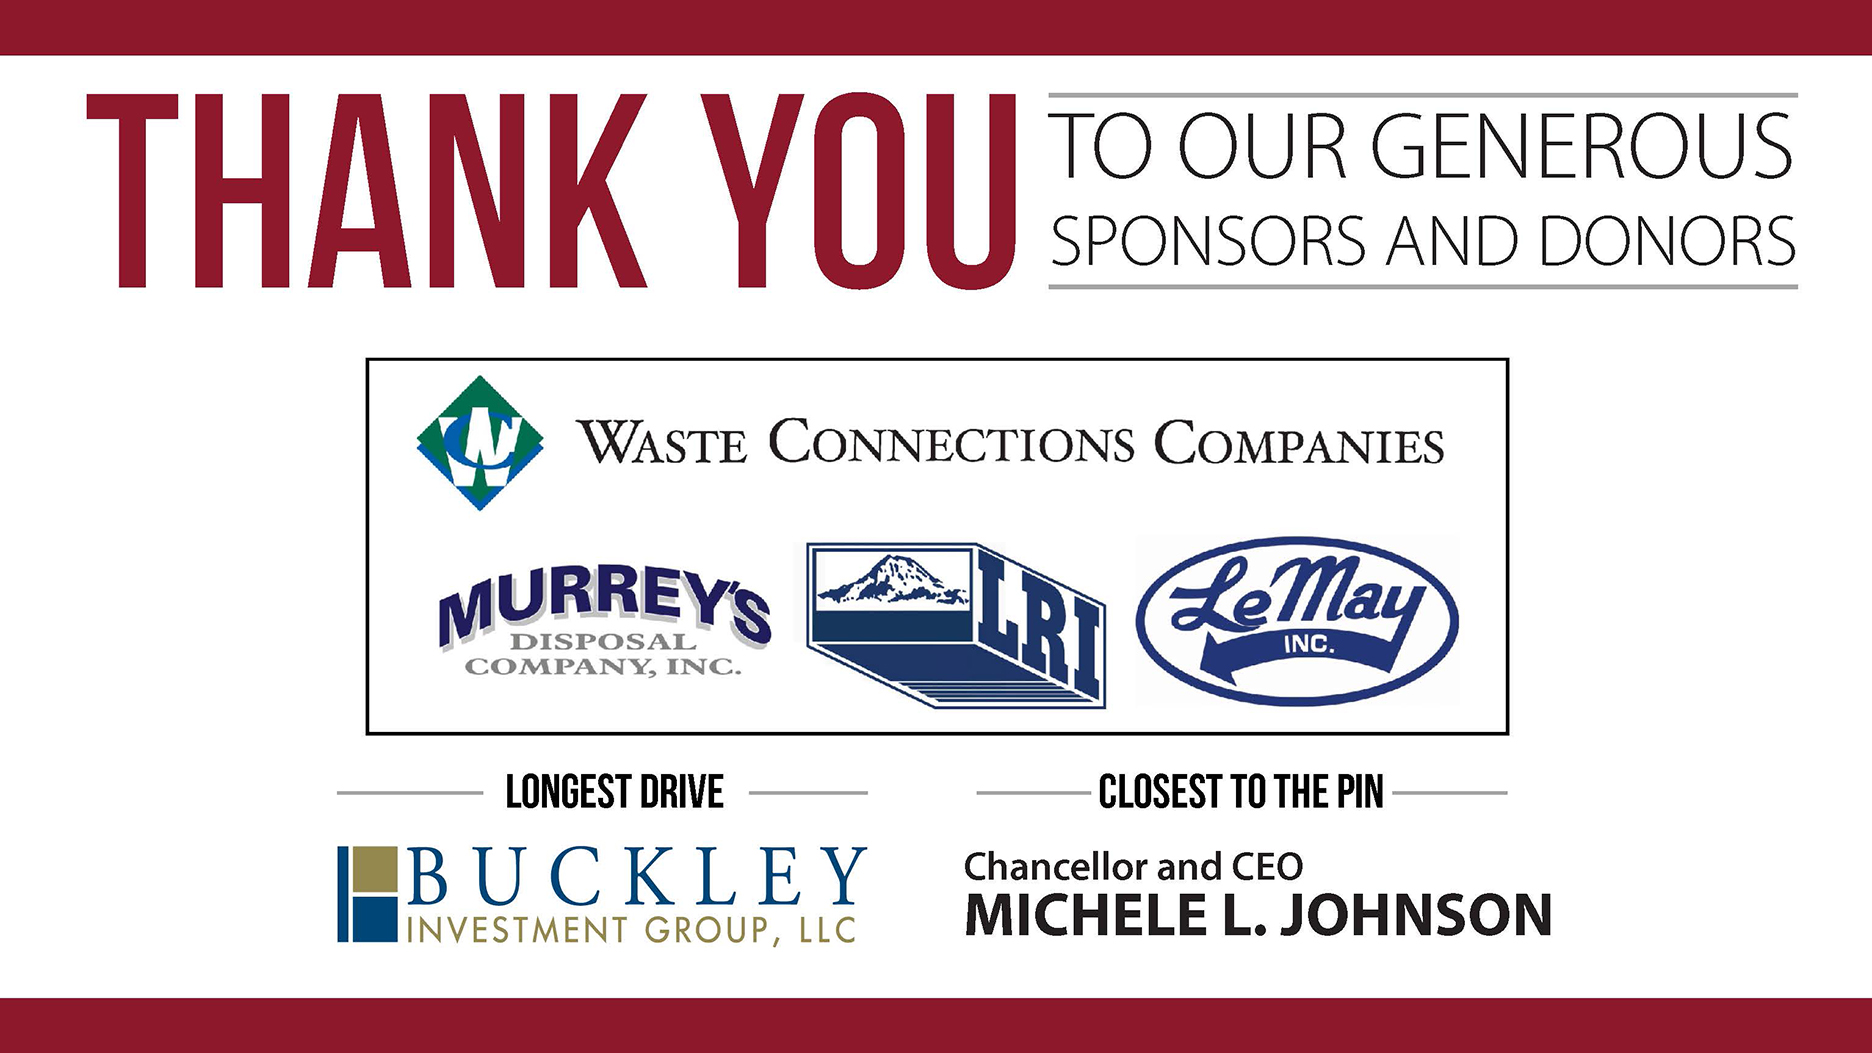 thank you to our generous sponsors and donors Waste Connection Companies, Murrey's Disposal Company, Inc., LRI, and LeMay Inc.; Longest Drive, Buckley Investment Group, LCC and Closest to the Pin, Chancellor and CEO Michele Johnson